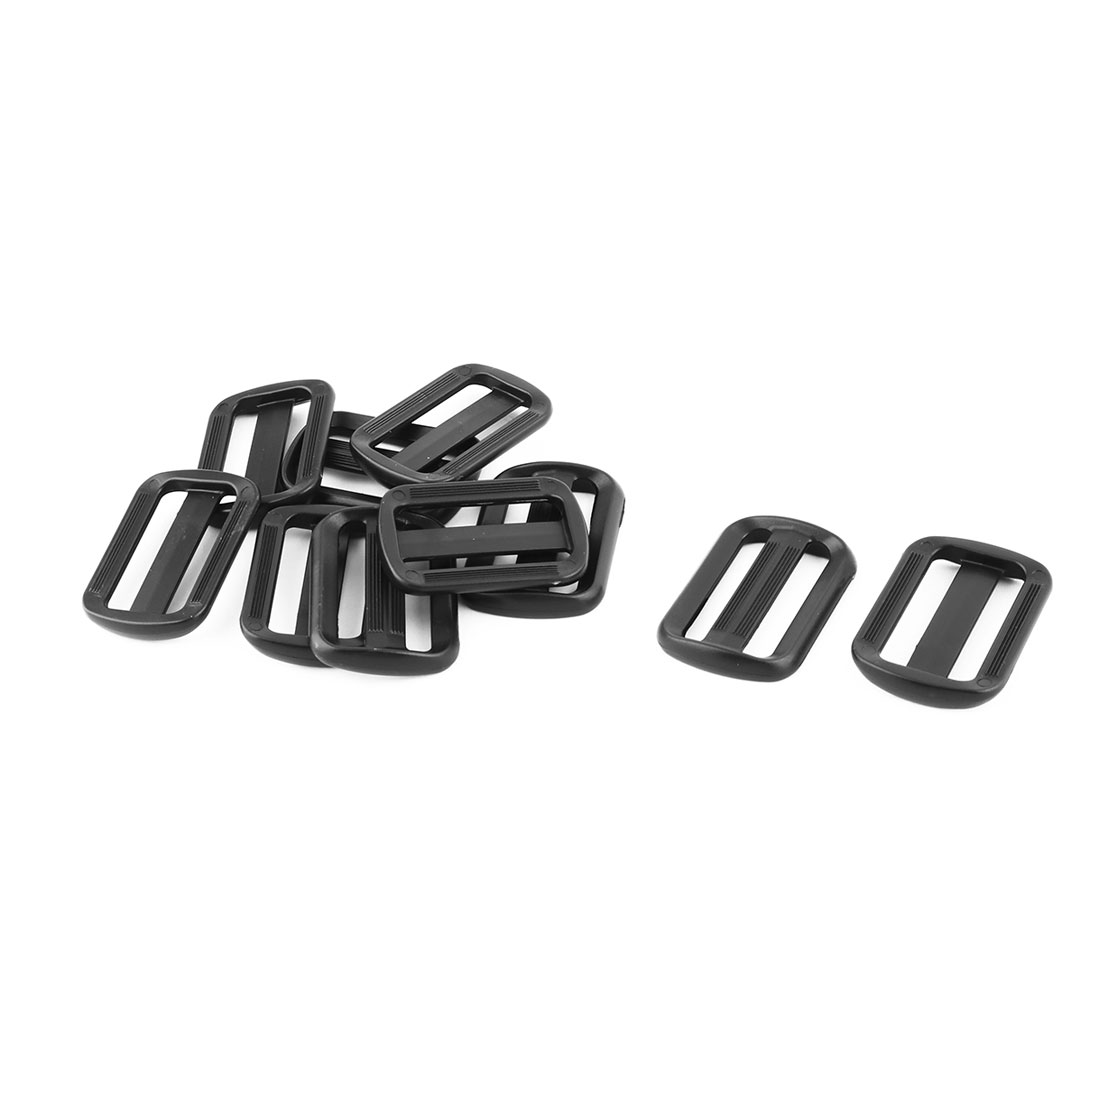 Outdoor Plastic Adjustable Backpack Strap Tri Glide Buckle Black 1.9 Inches Length 10pcs